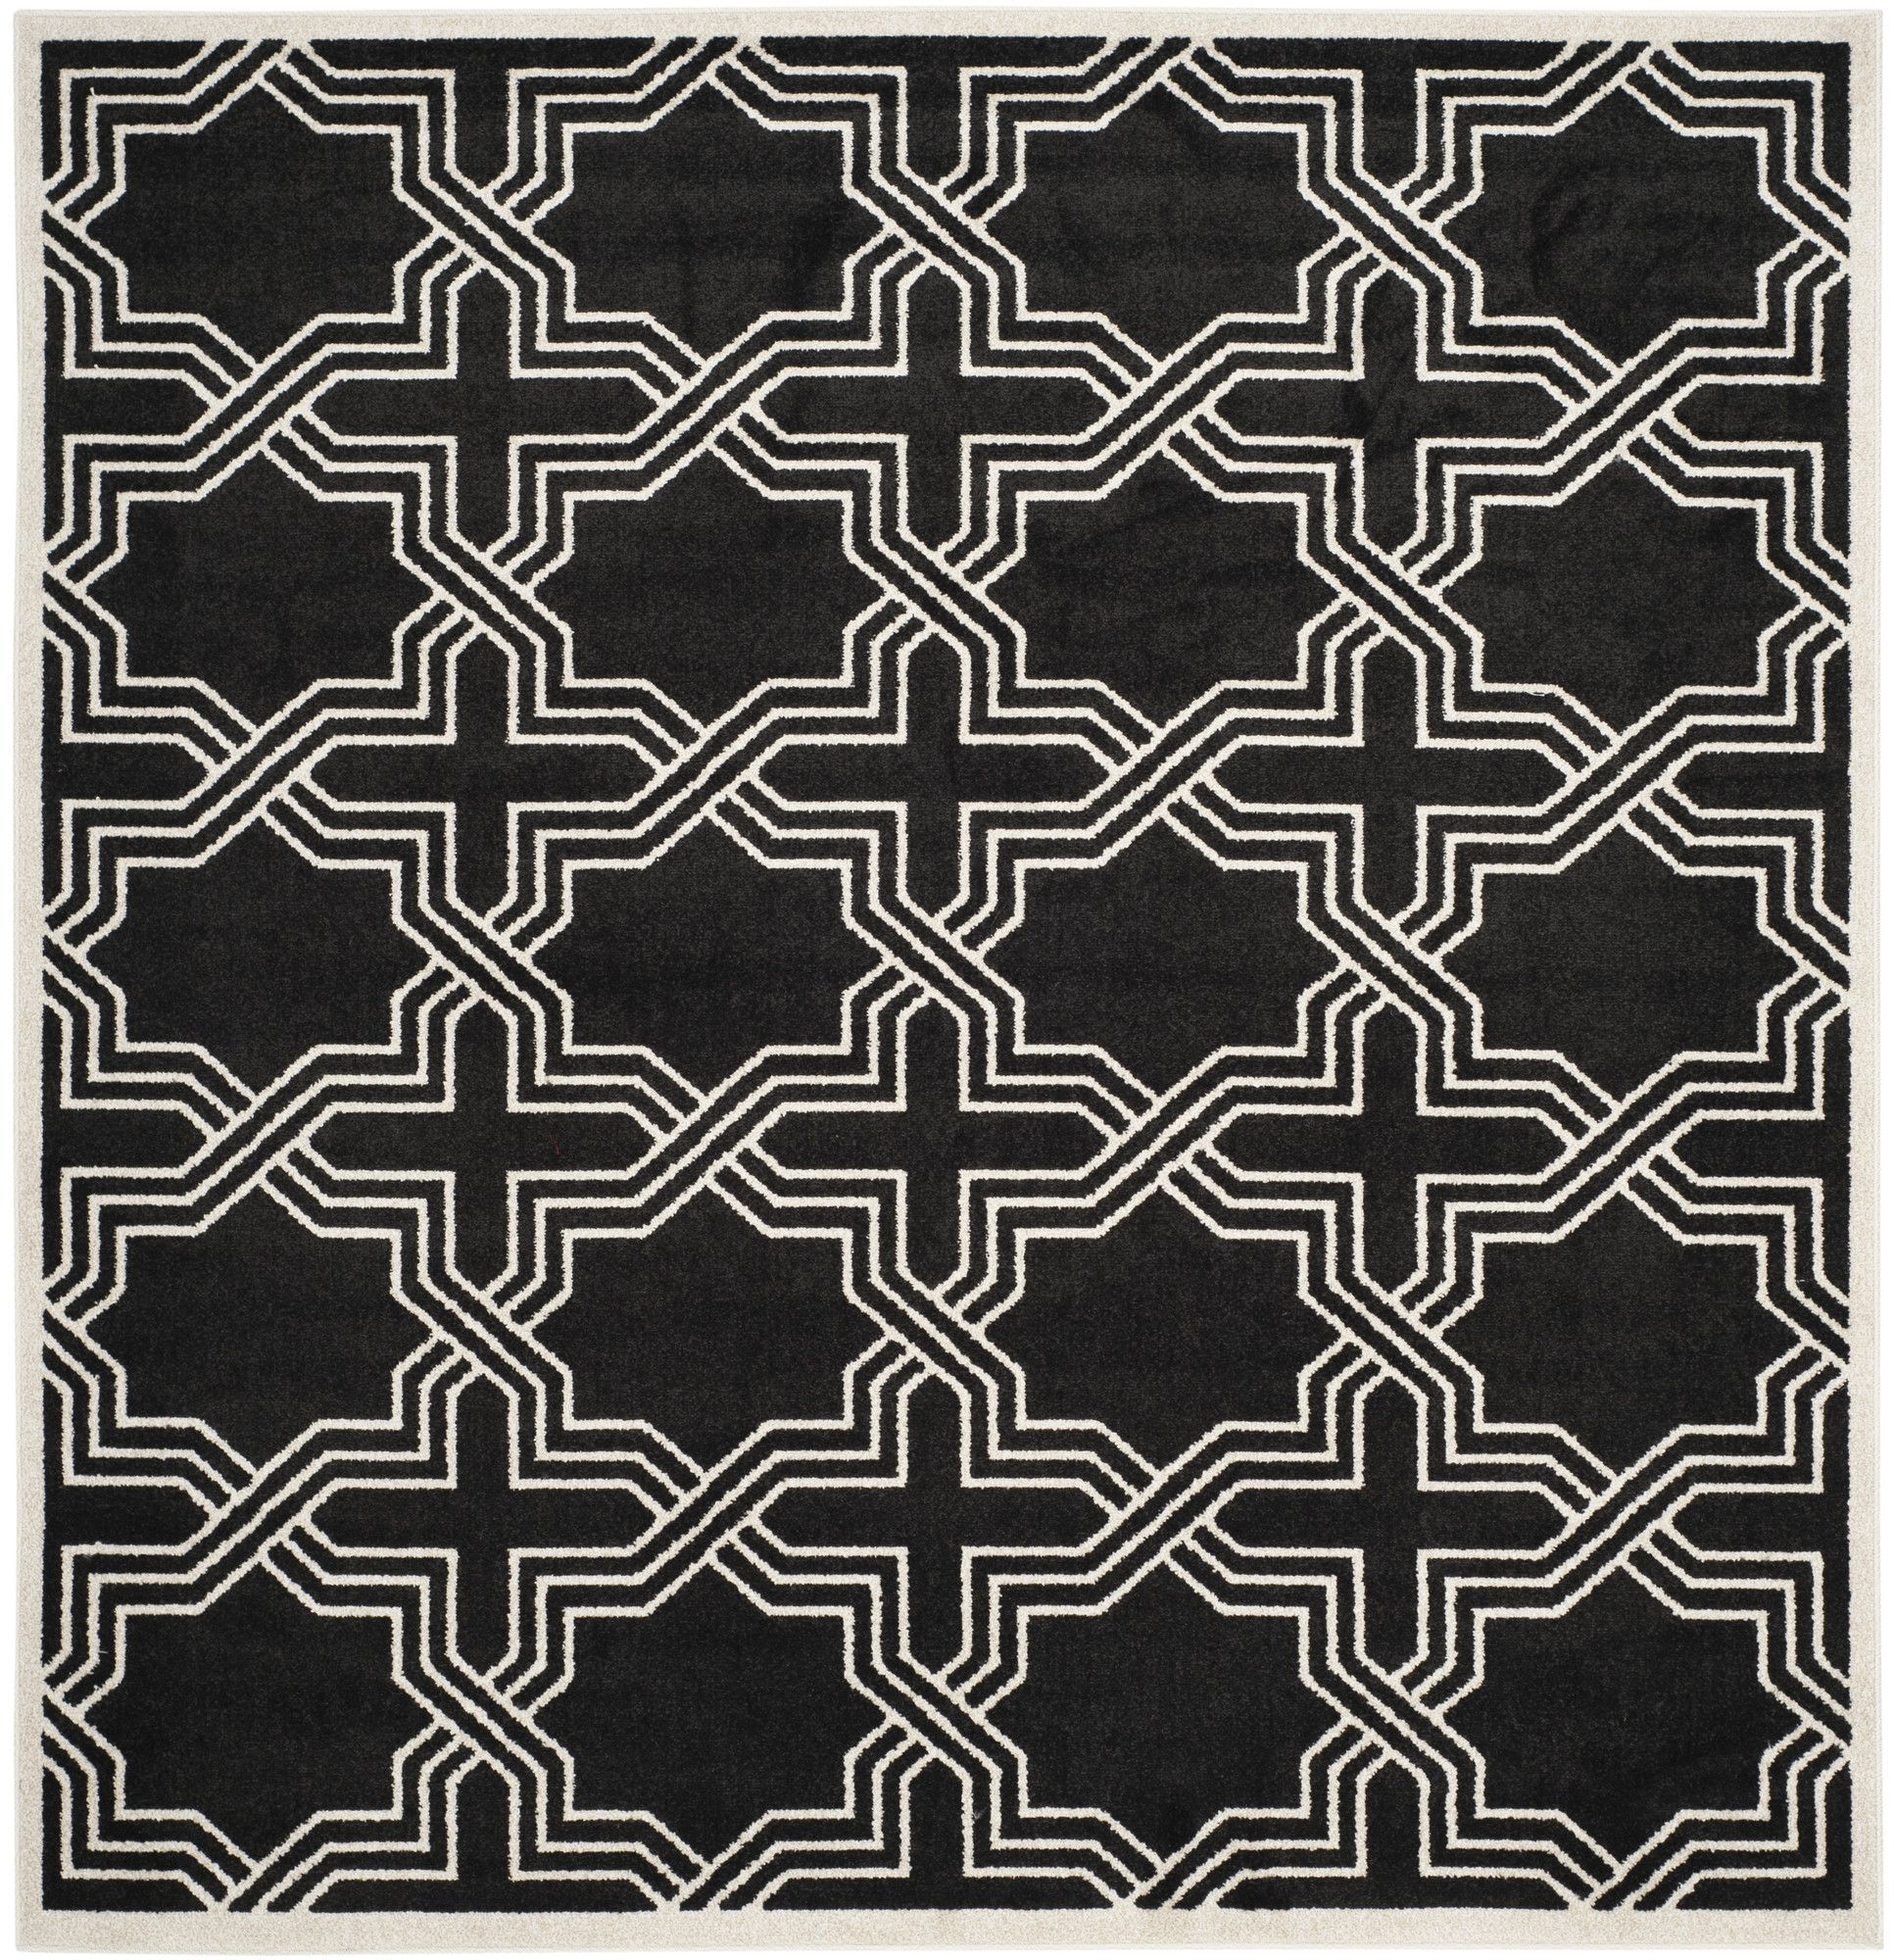 Waverly Place Anthracite/Ivory Indoor/Outdoor Area Rug